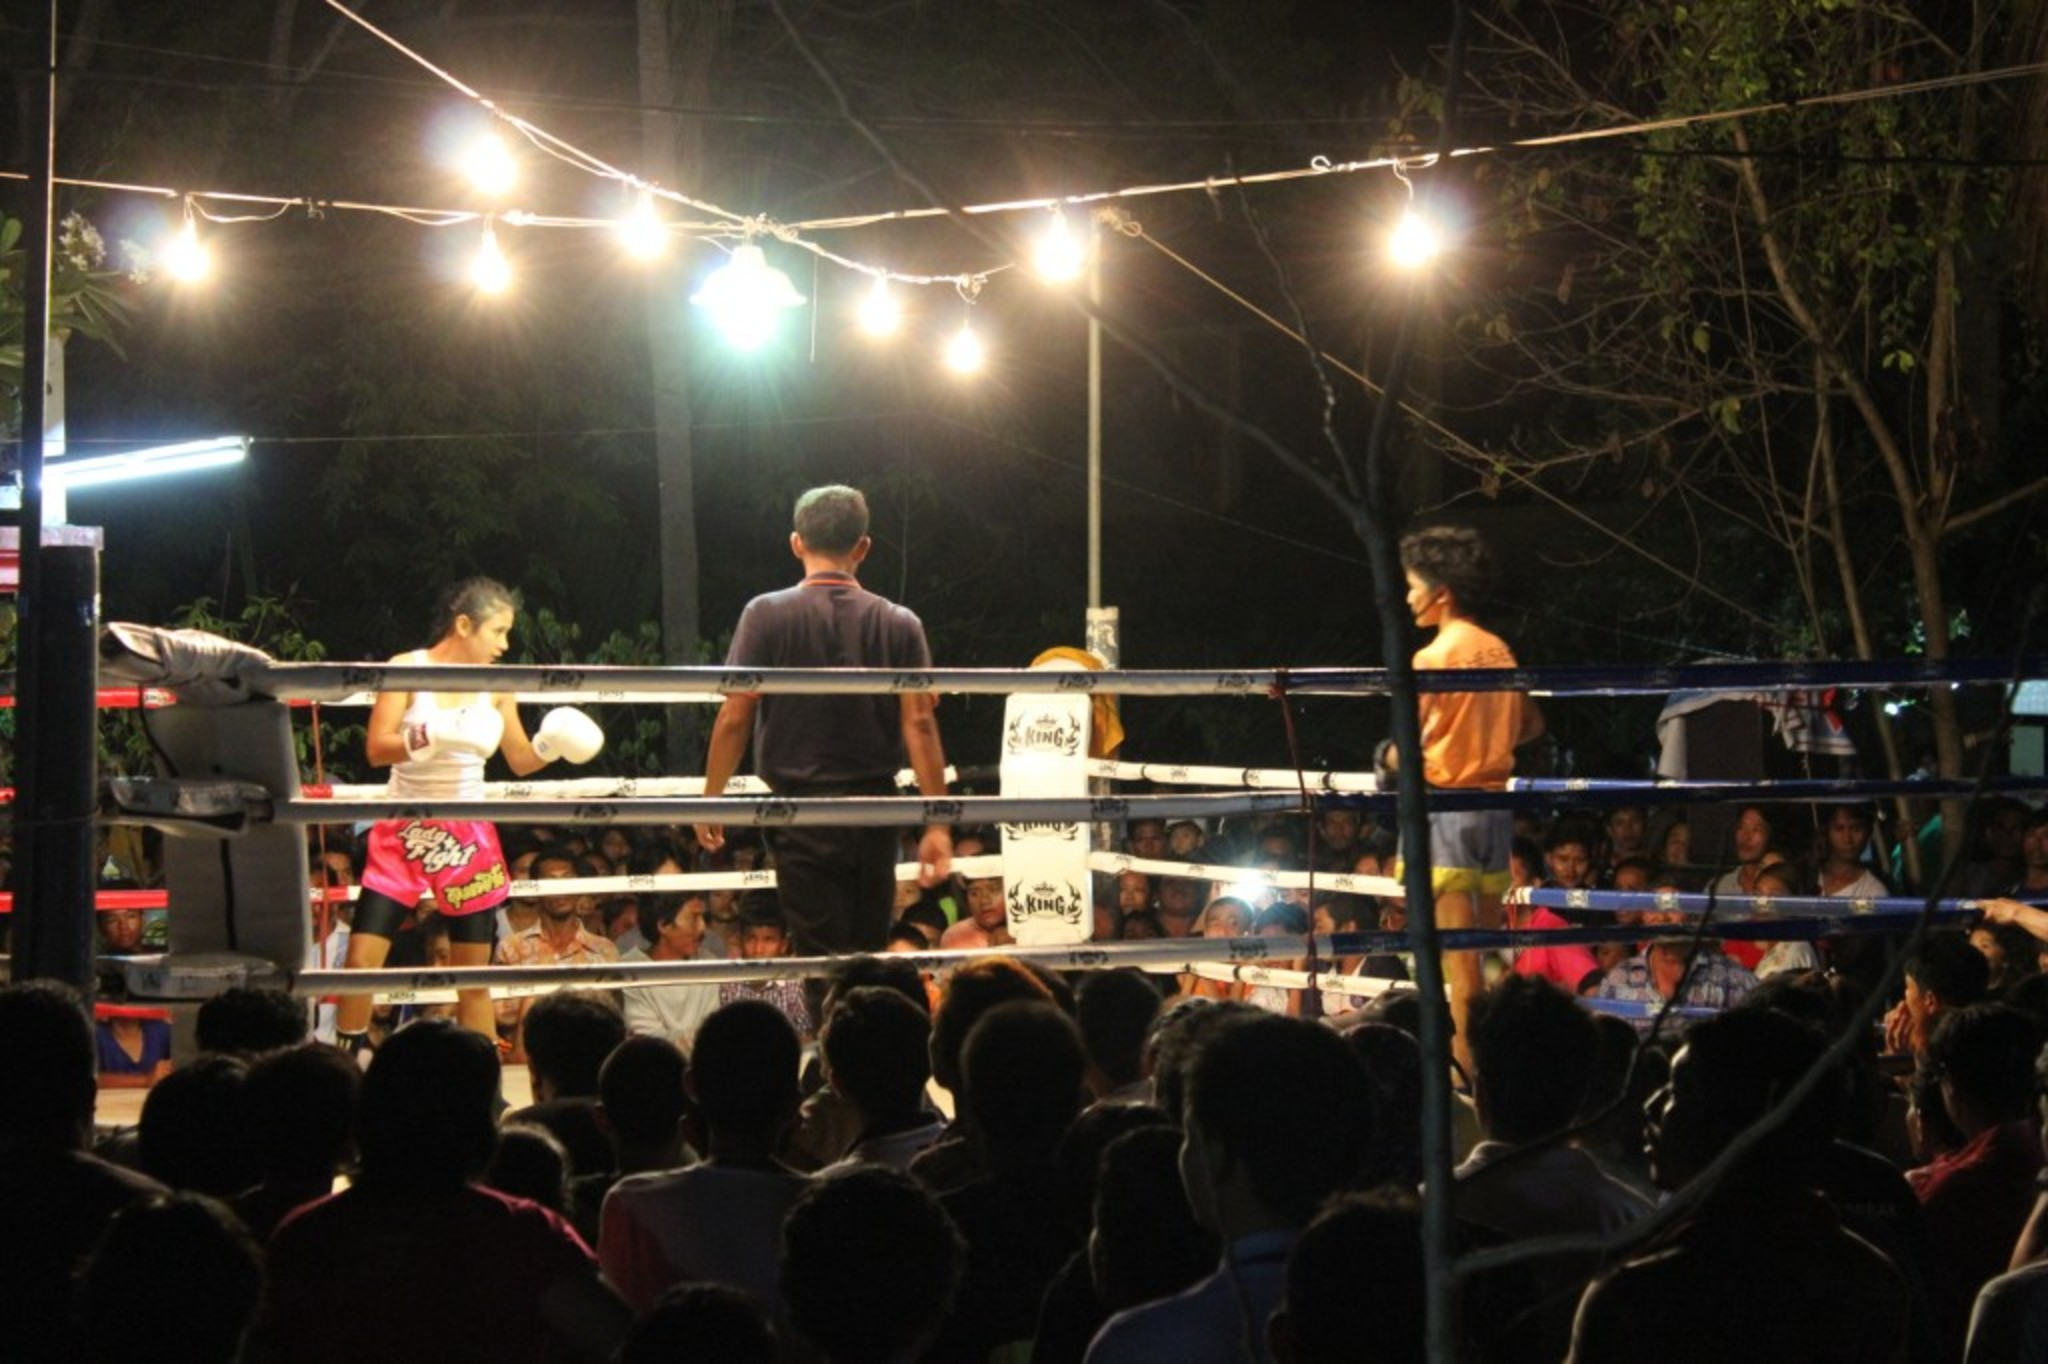 Thai - kick boxing match!